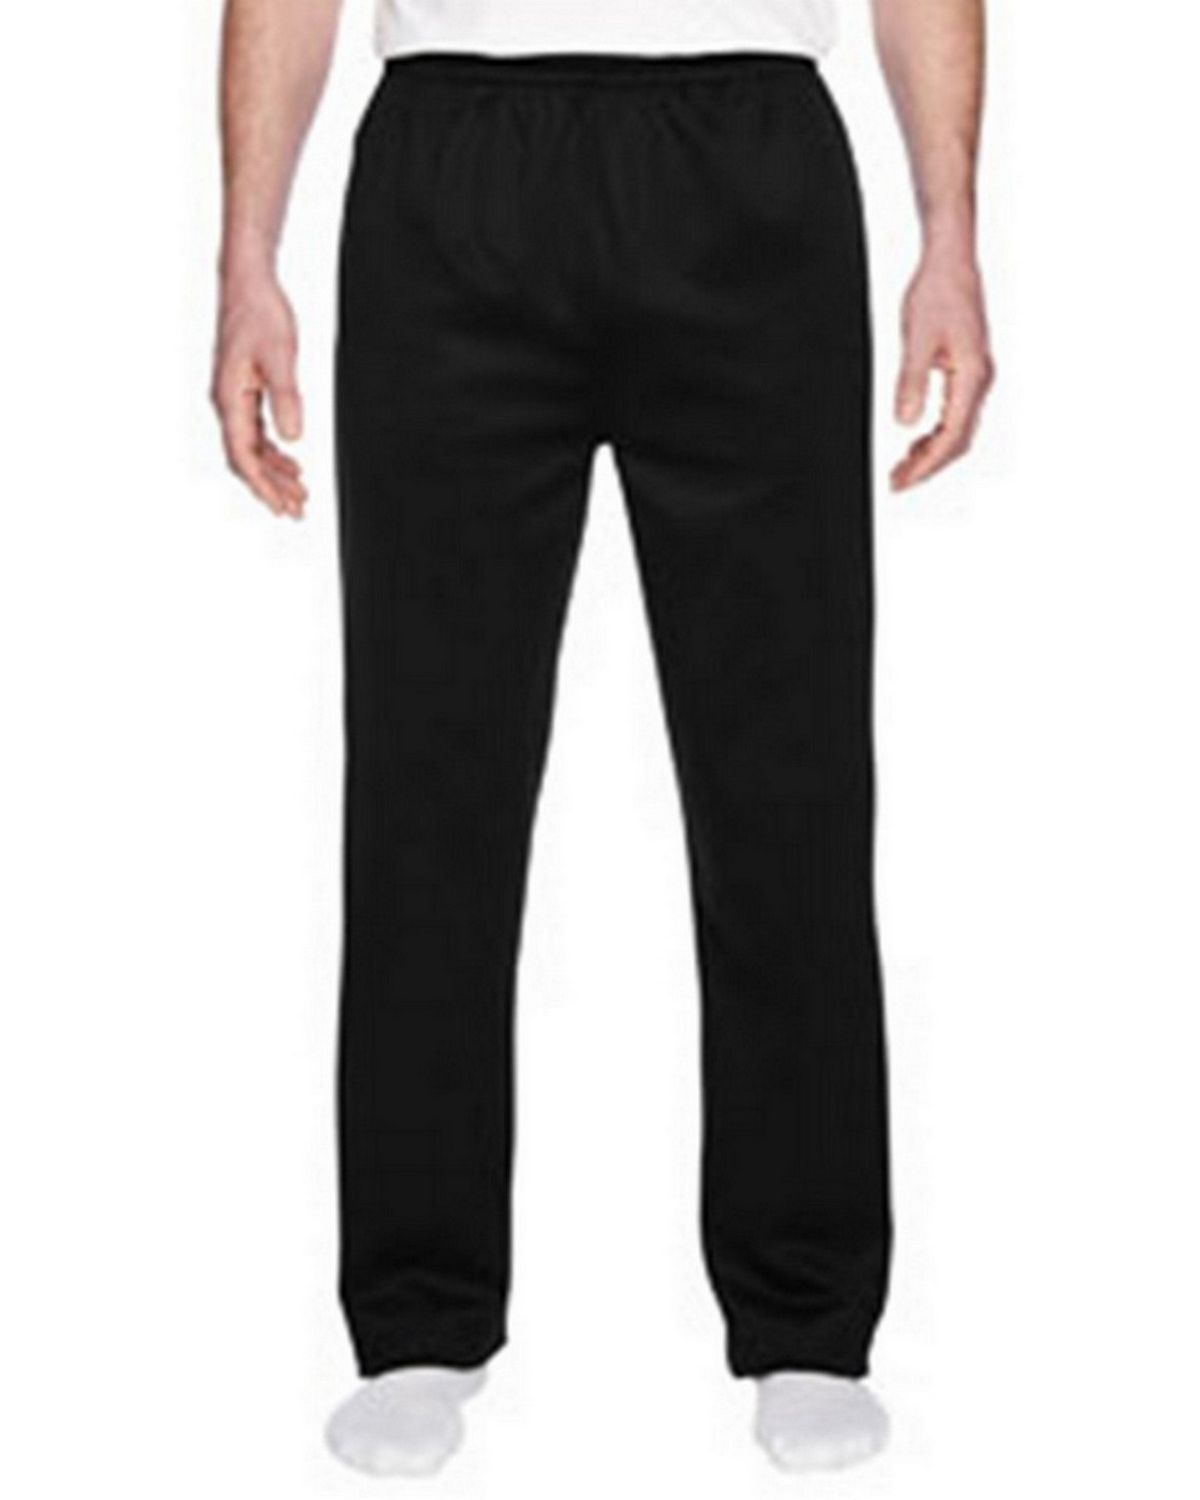 Jerzees PF974MP Fleece Pant - Black - M PF974MP